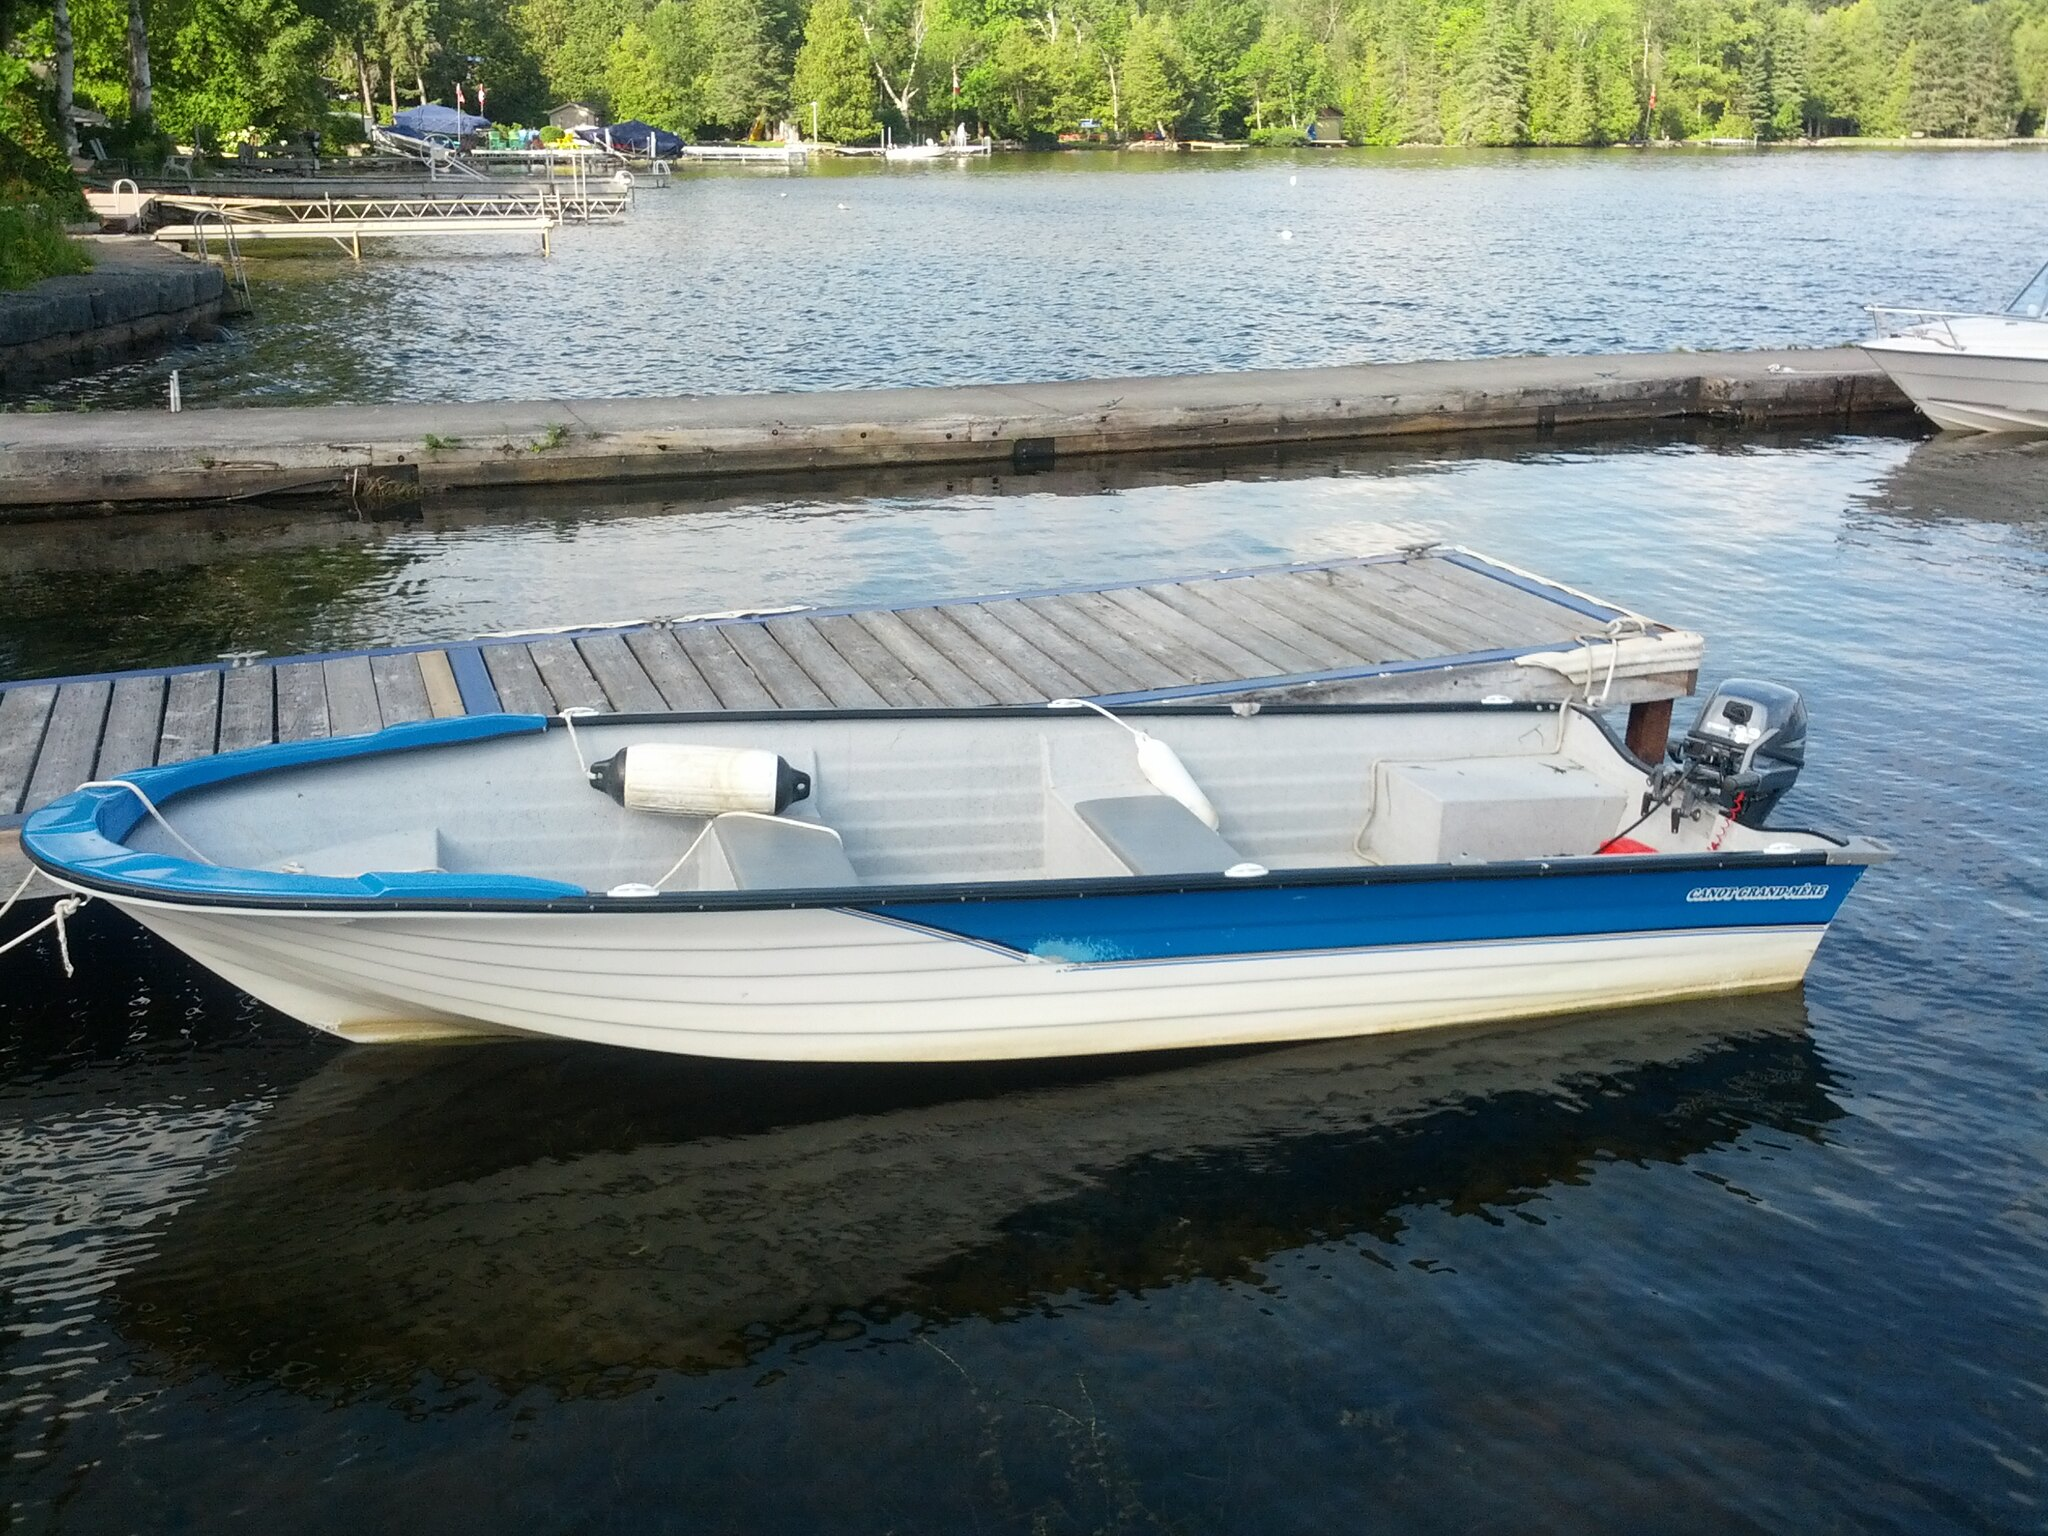 Boat and Watercraft Rentals | Fenelon Falls Marina, Kawartha